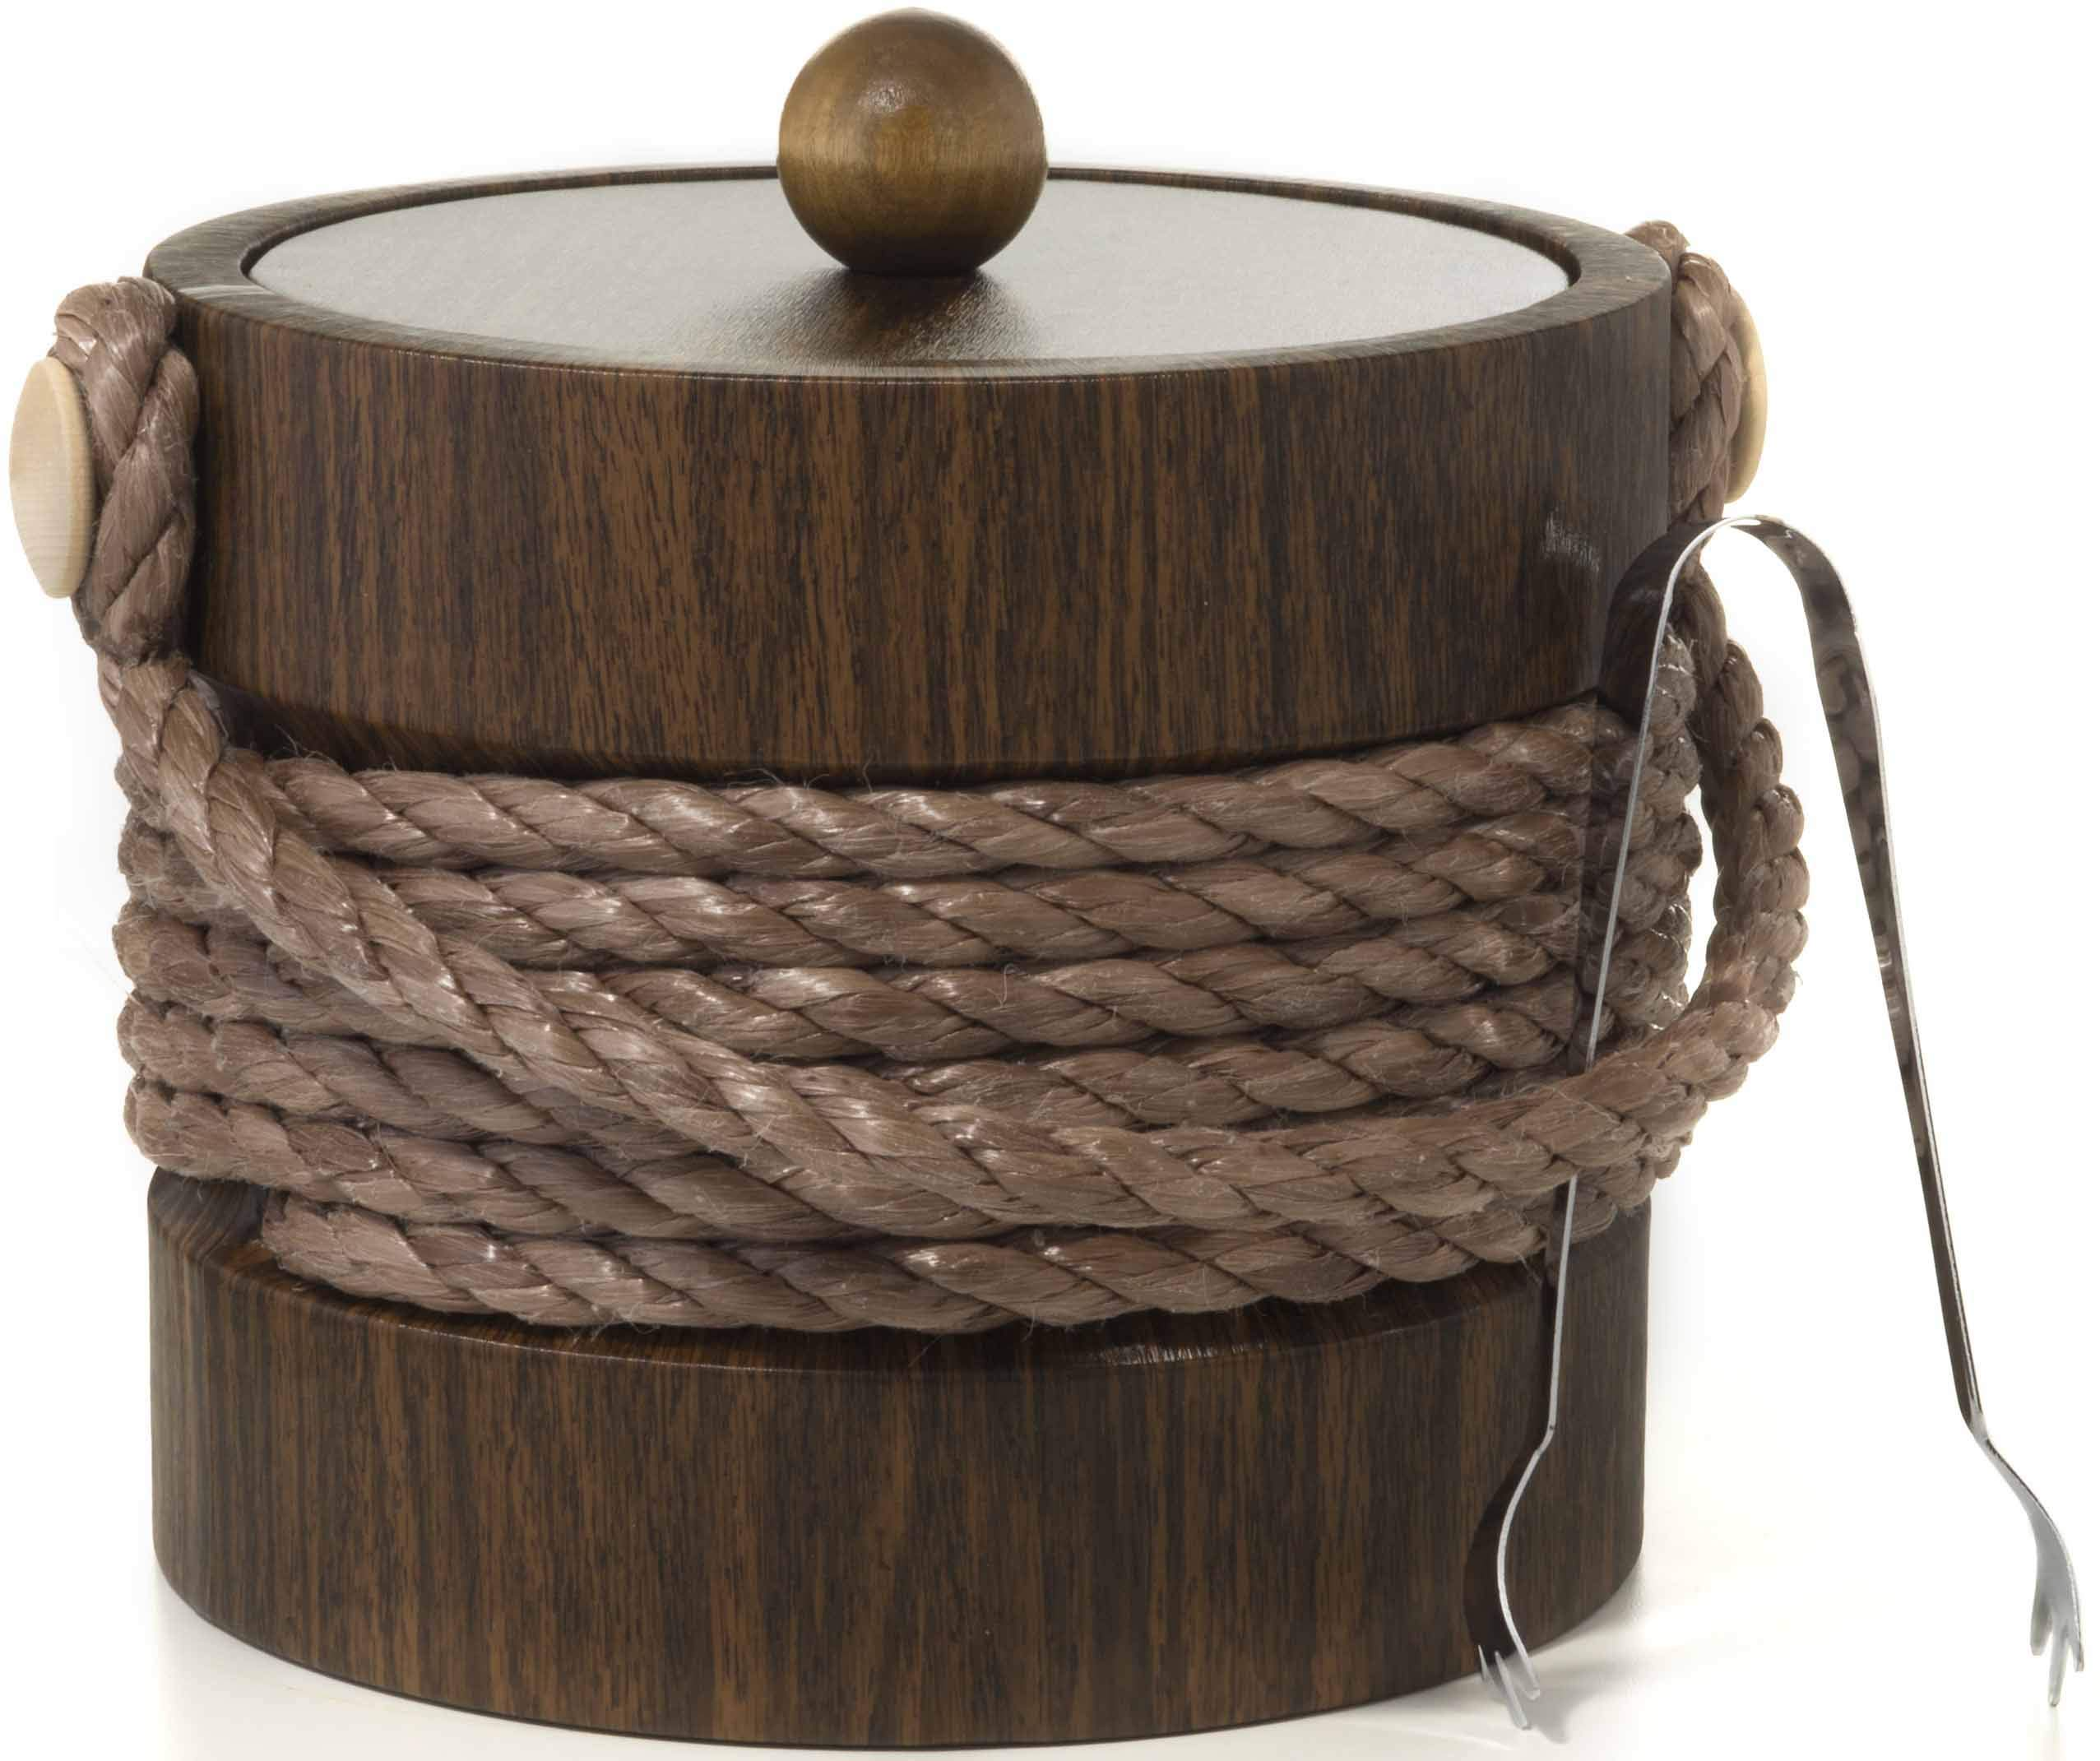 Hand Made In USA Walnut Grain With Rope Handle Double Walled 3-Quart Insulated Ice Bucket With Bonus Ice Tongs